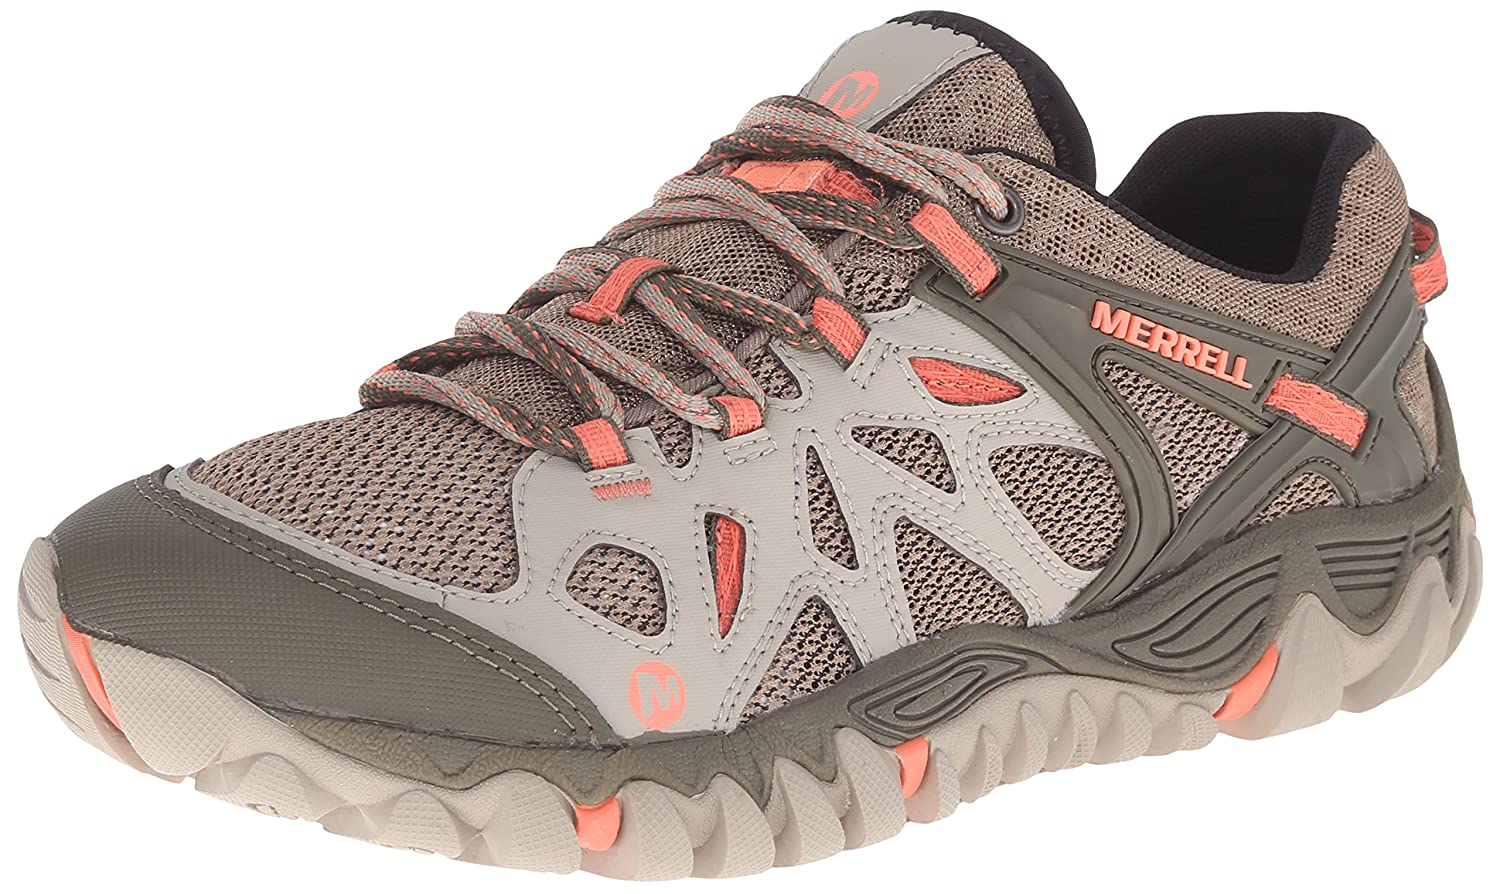 Merrell Women's All Out Blaze Aero Sport Hiking Water Shoe B00YBGRTB2 9 B(M) US|Beige/Khaki